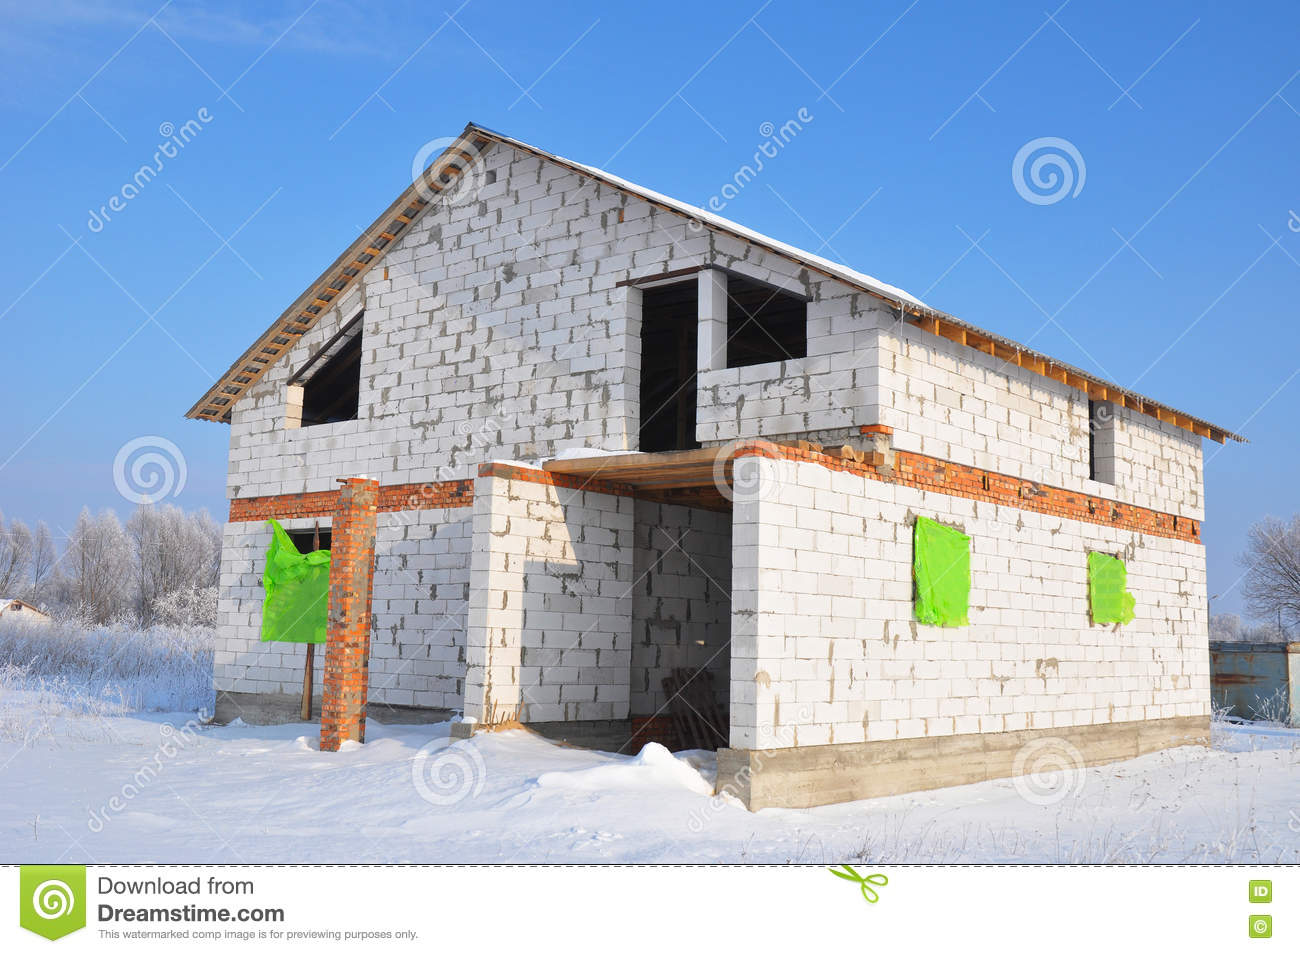 Building new house from white autoclaved aerated concrete for Concrete block house